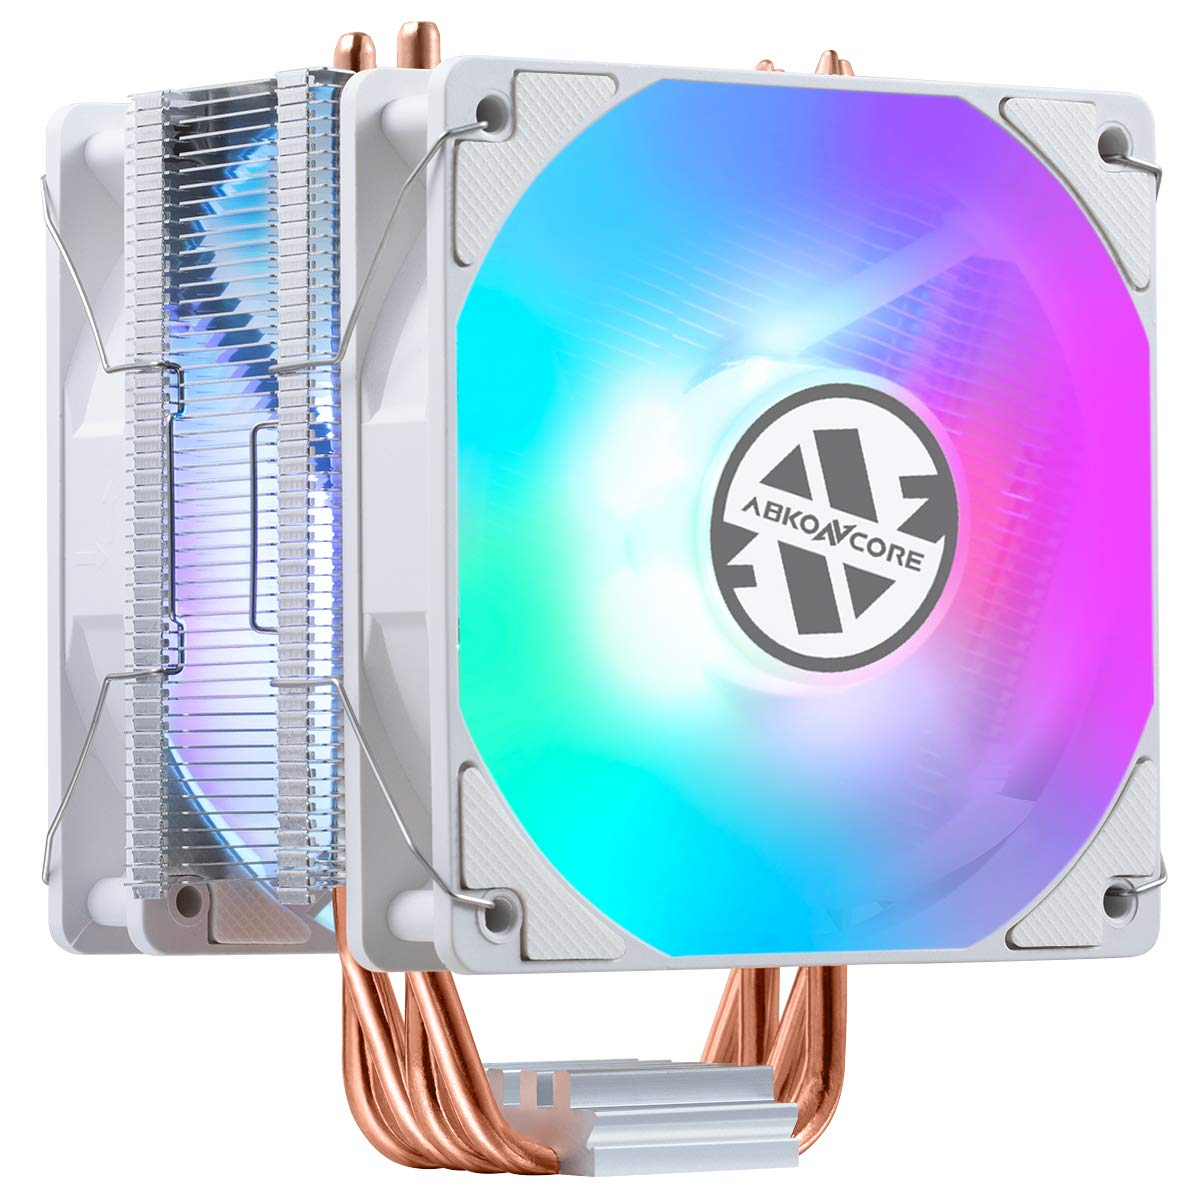 CPU Cooler ABKONCORE CT406W AIR With Dual 120mm PWM Silent F